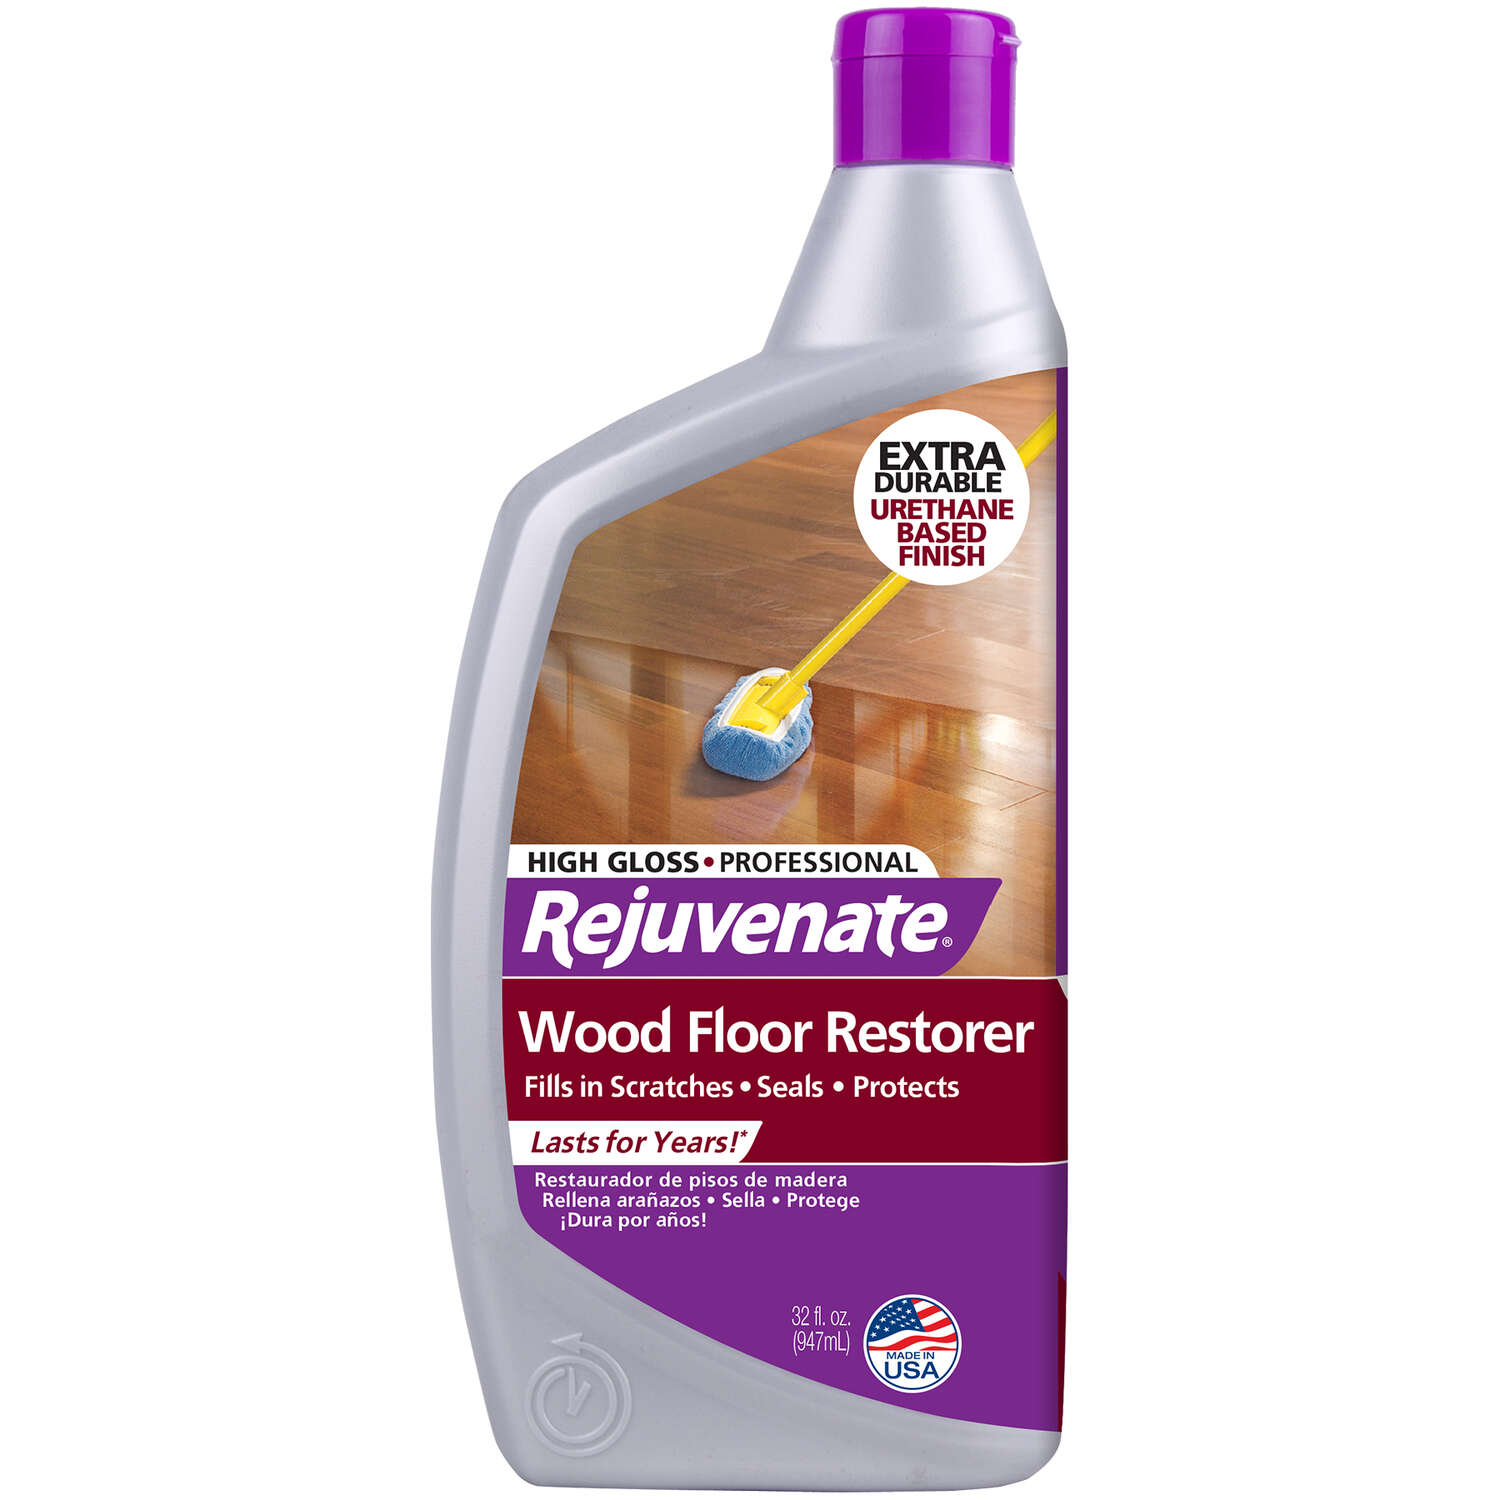 Rejuvenate High Gloss Wood Floor Restorer Liquid 32 oz.